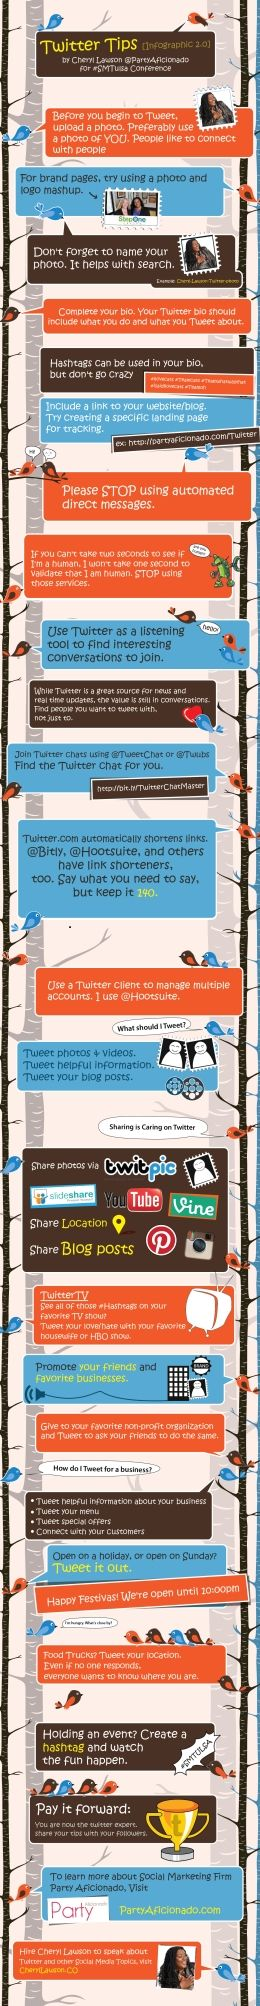 #Twitter #Infographic